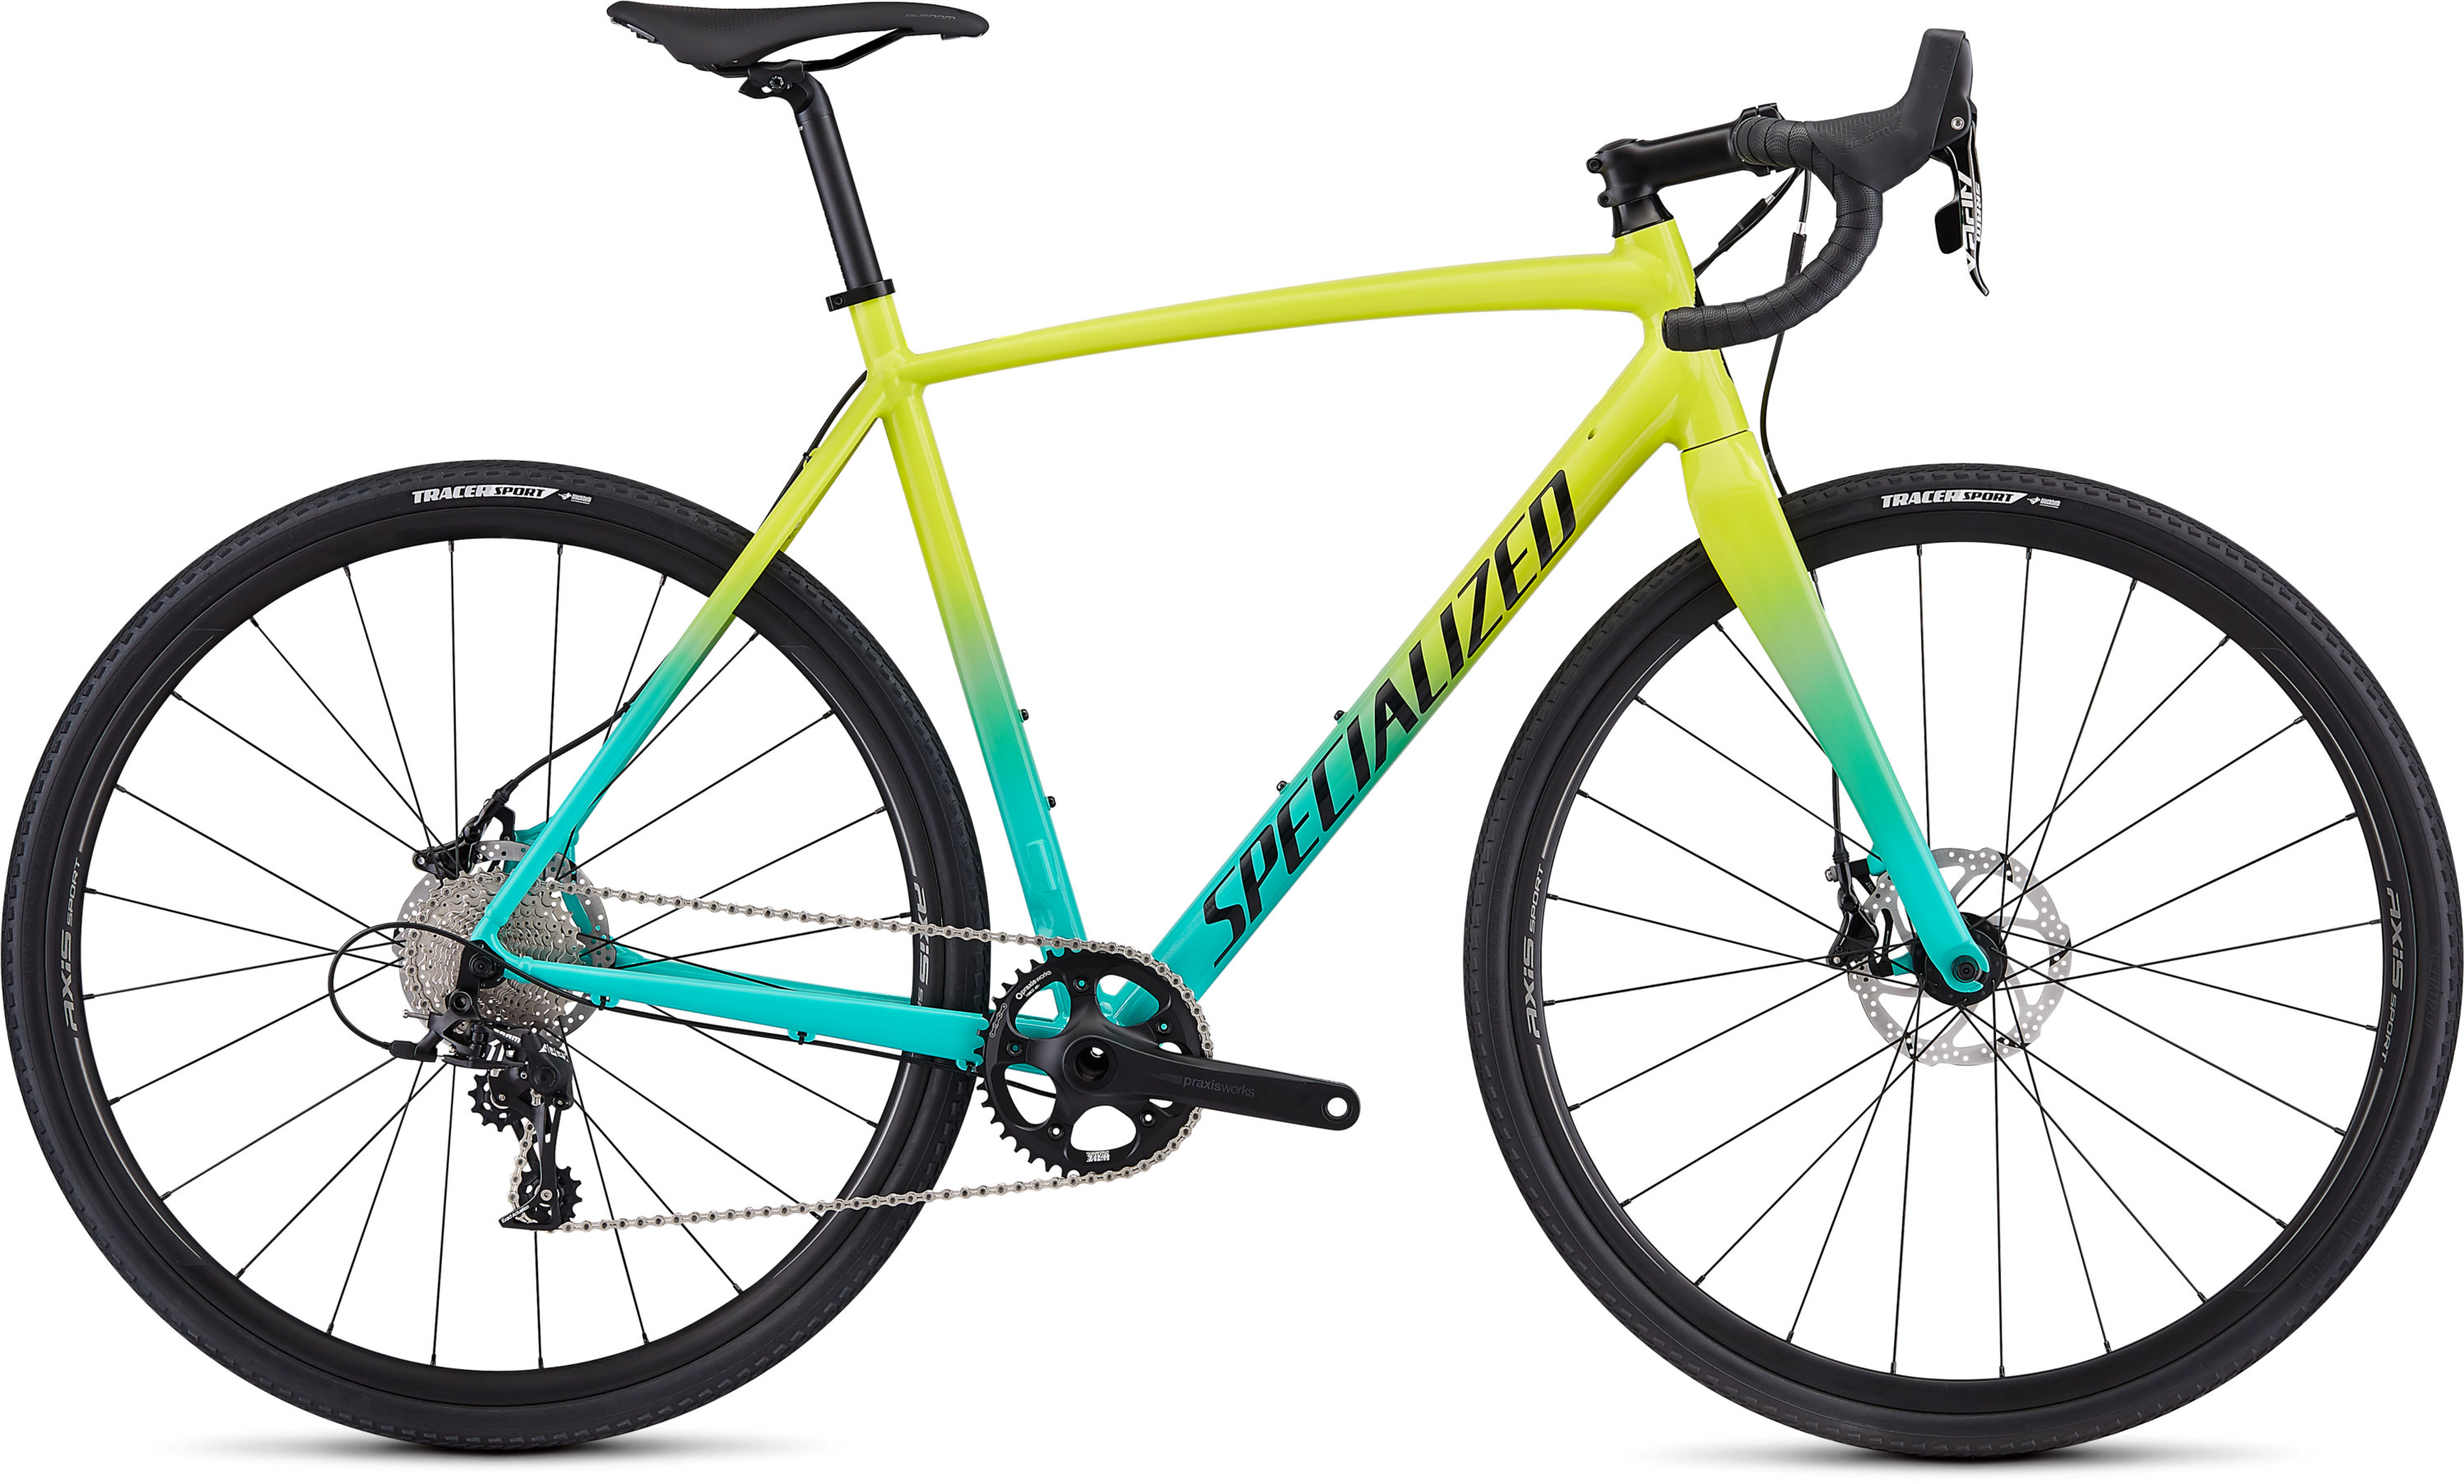 Specialized CruX E5 Sport Gloss Team Yellow/Acid Mint/Tarmac Black/Clean 49 - Bartz Bikesystem & Velodepot